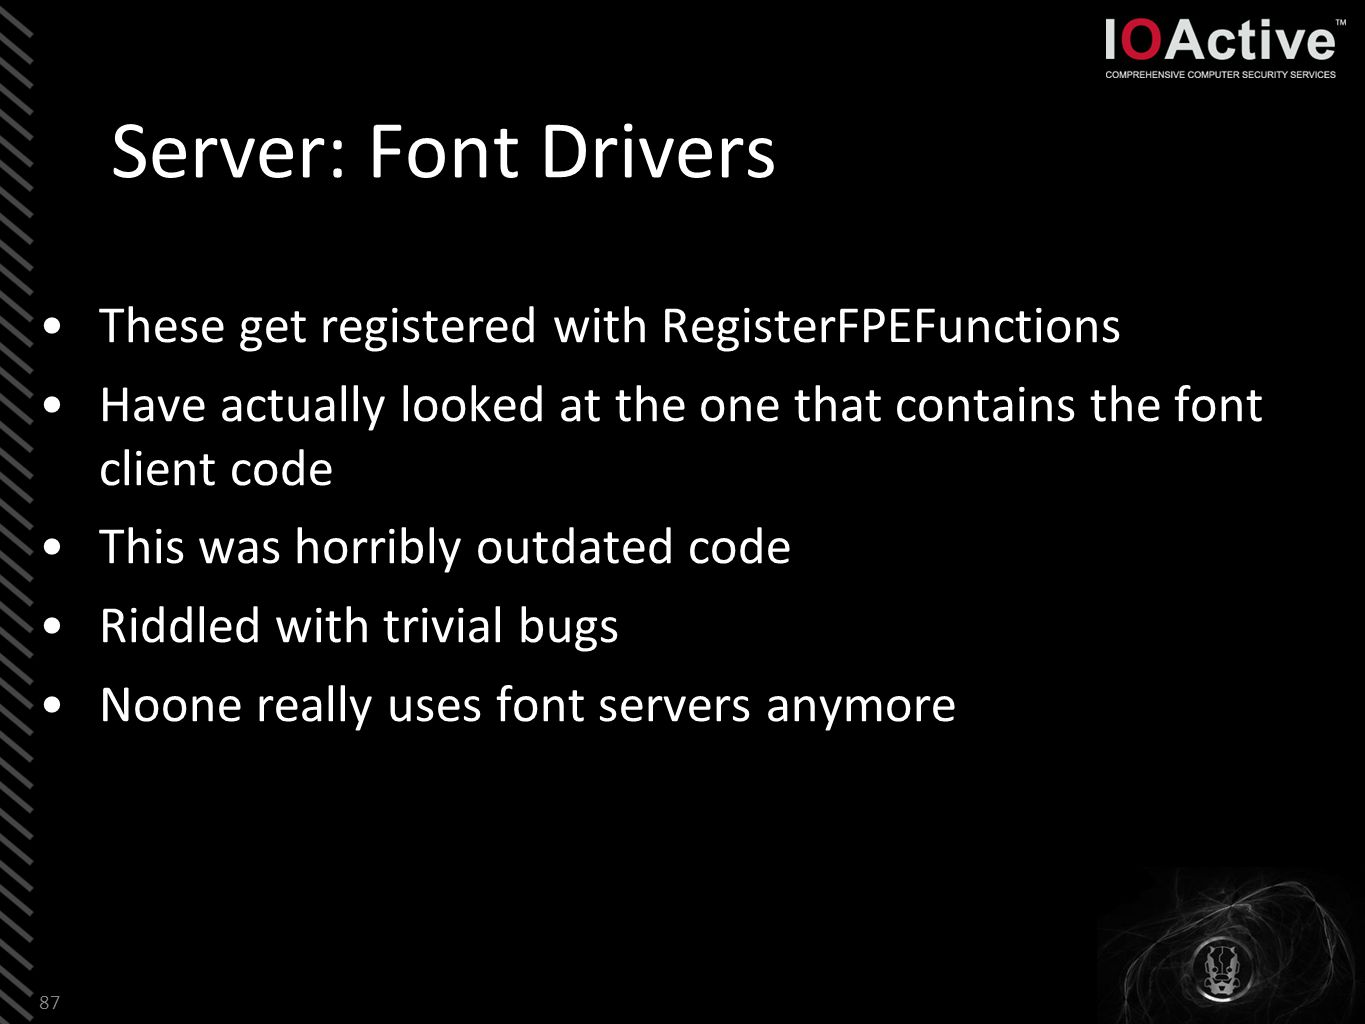 Server: Font Drivers These get registered with RegisterFPEFunctions Have actually looked at the one that contains the font client code This was horribly outdated code Riddled with trivial bugs Noone really uses font servers anymore 87